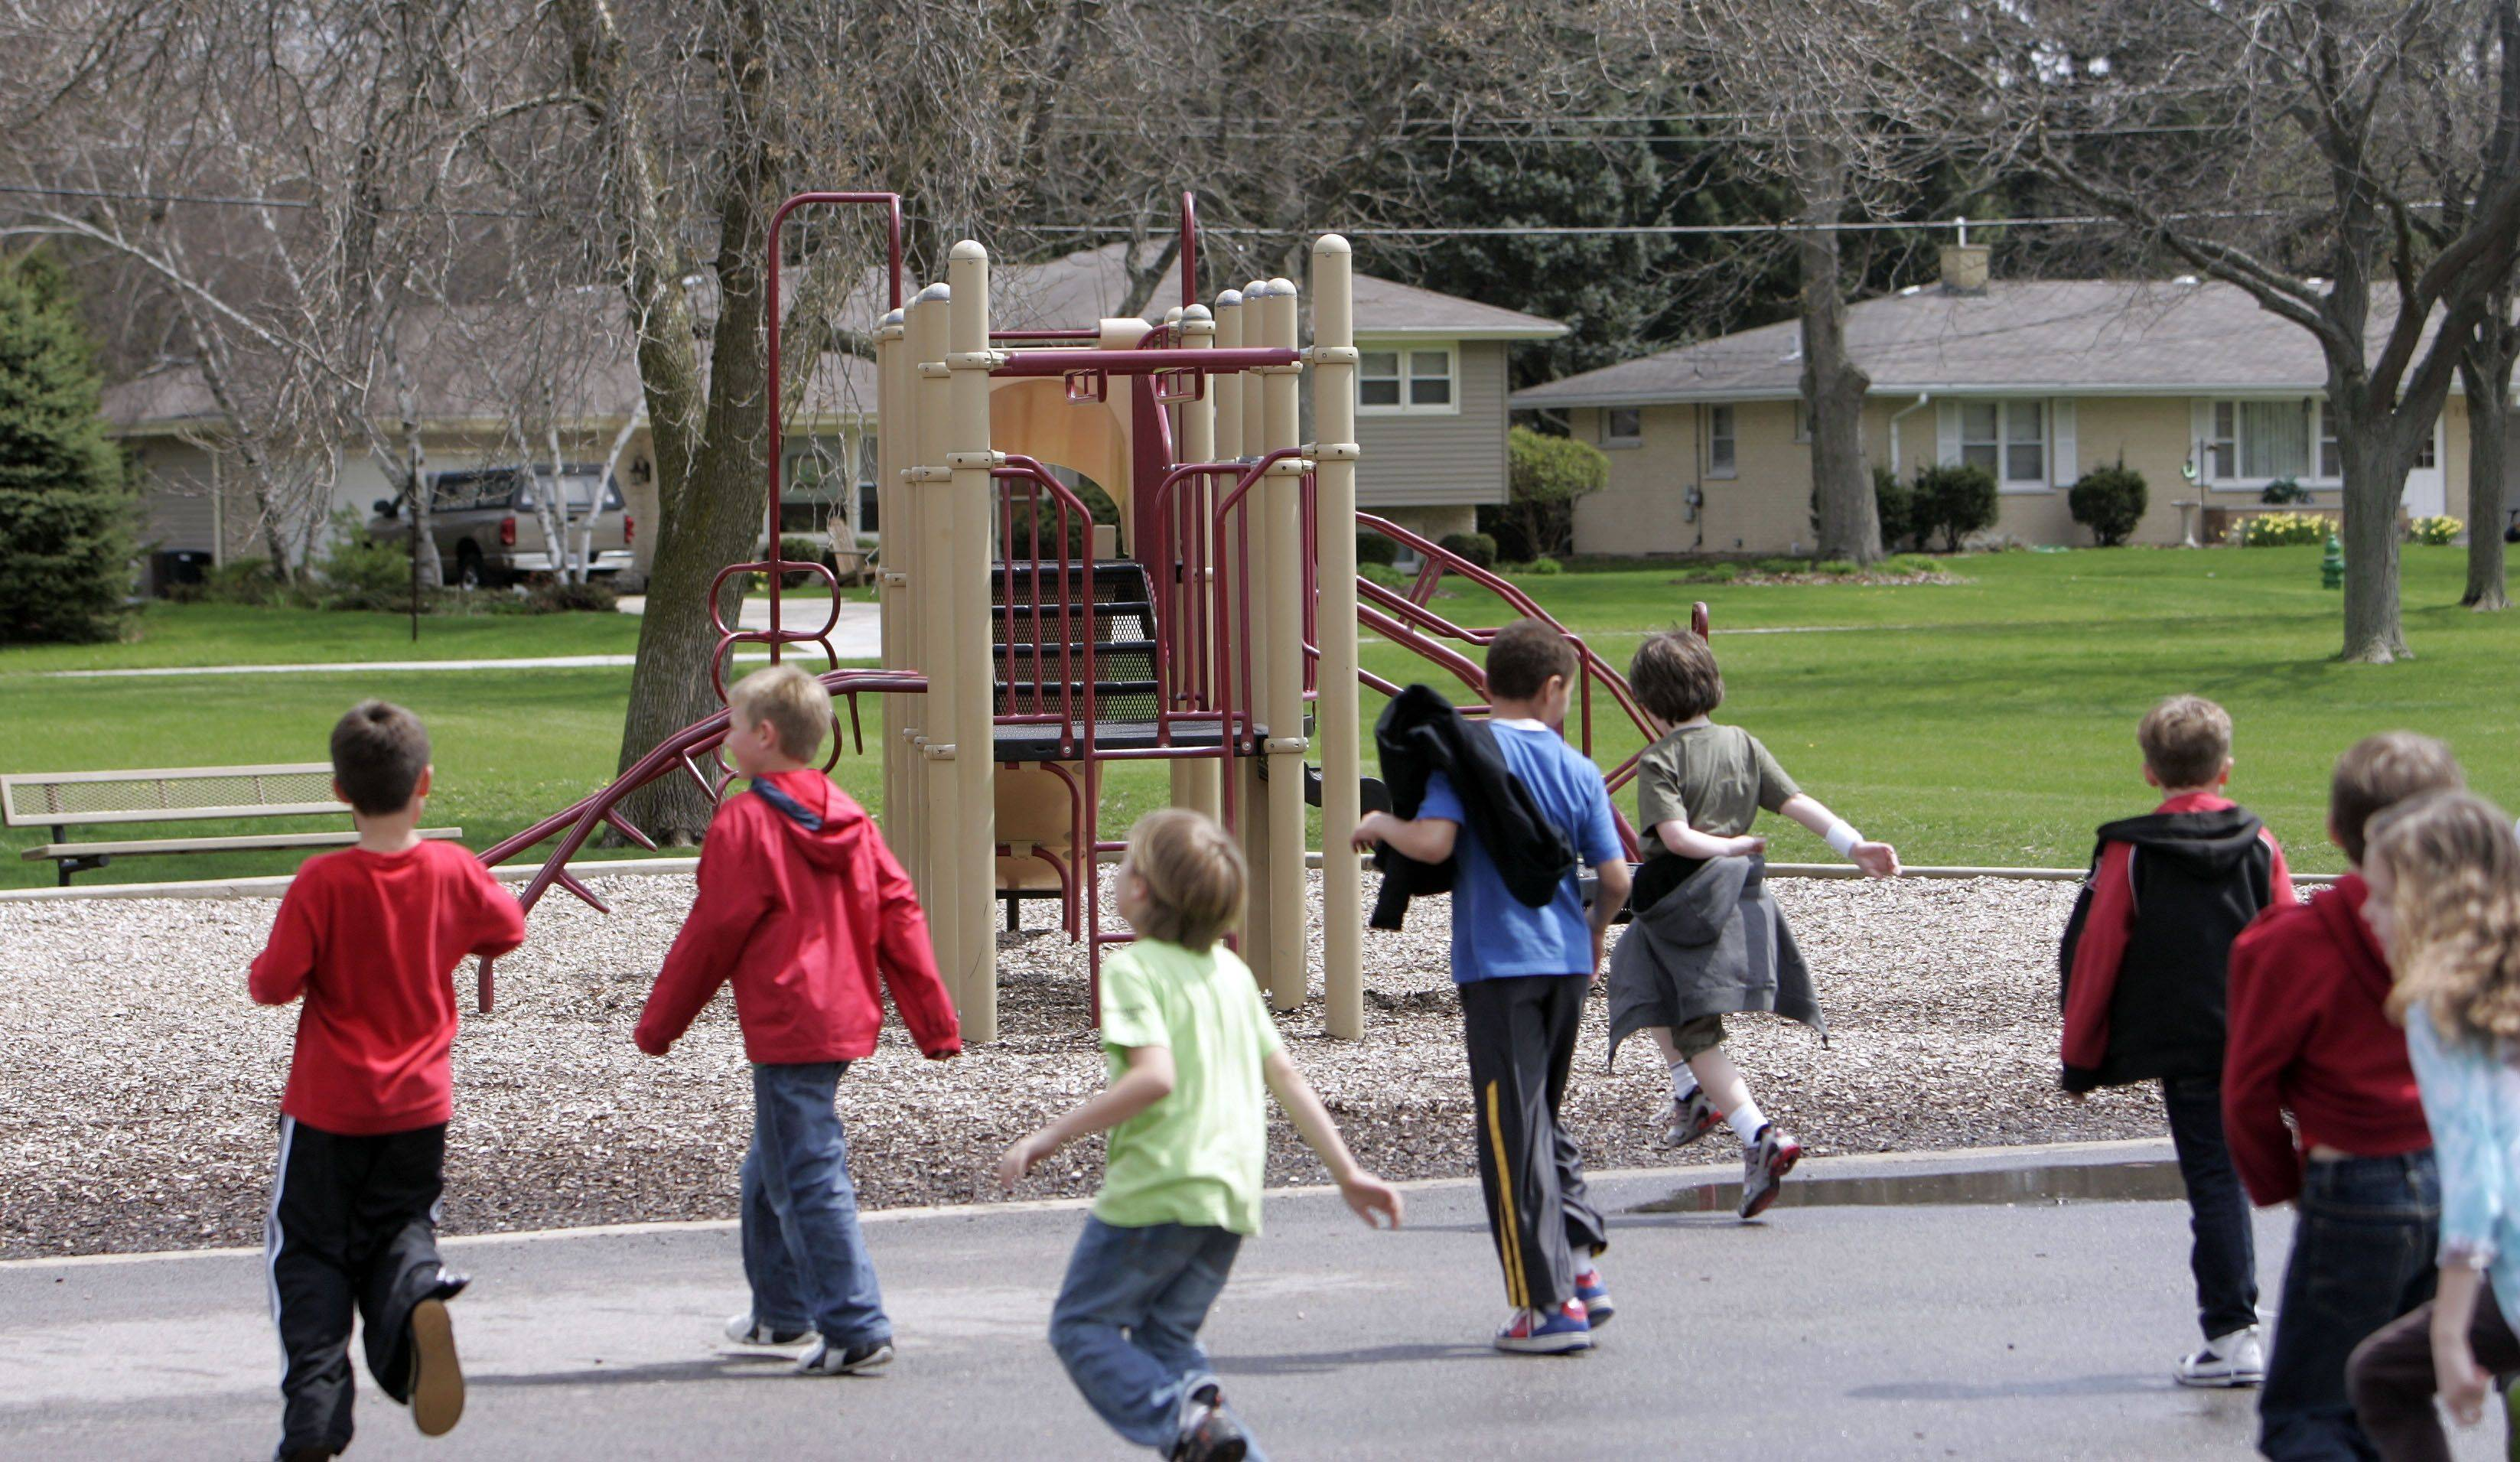 This playground at H.C. Storm School in Batavia will have some of its older equipment replaced using funds from the $10,000 grant the elementary school received. Principal Cynthia Sikorski hopes to have the work completed by the end of June.